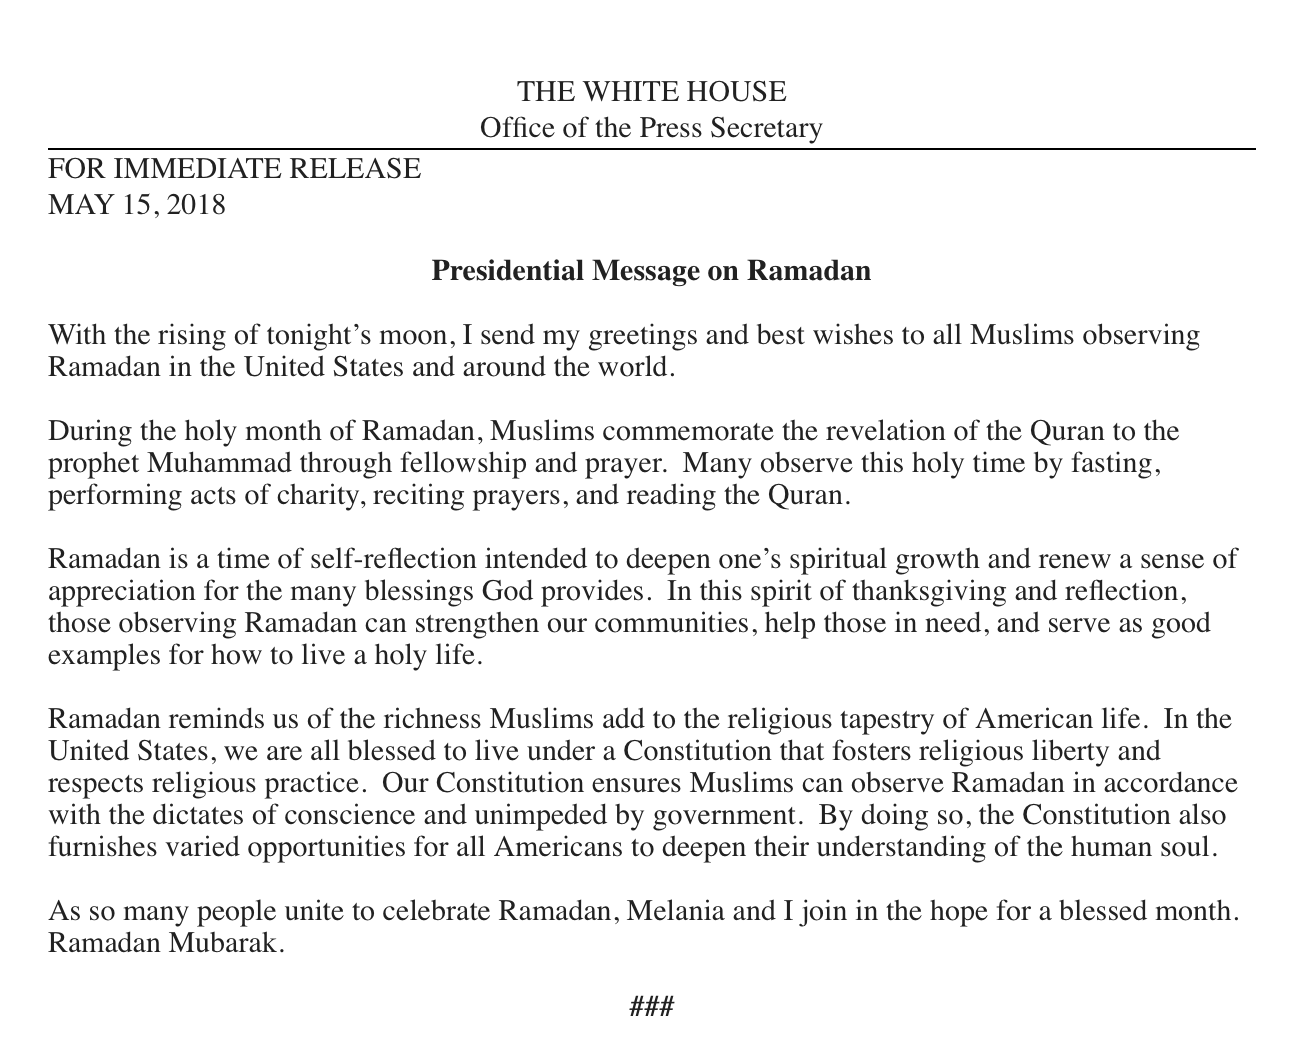 Trump Ramadan Greeting Hails Muslims Who Add To The Religious